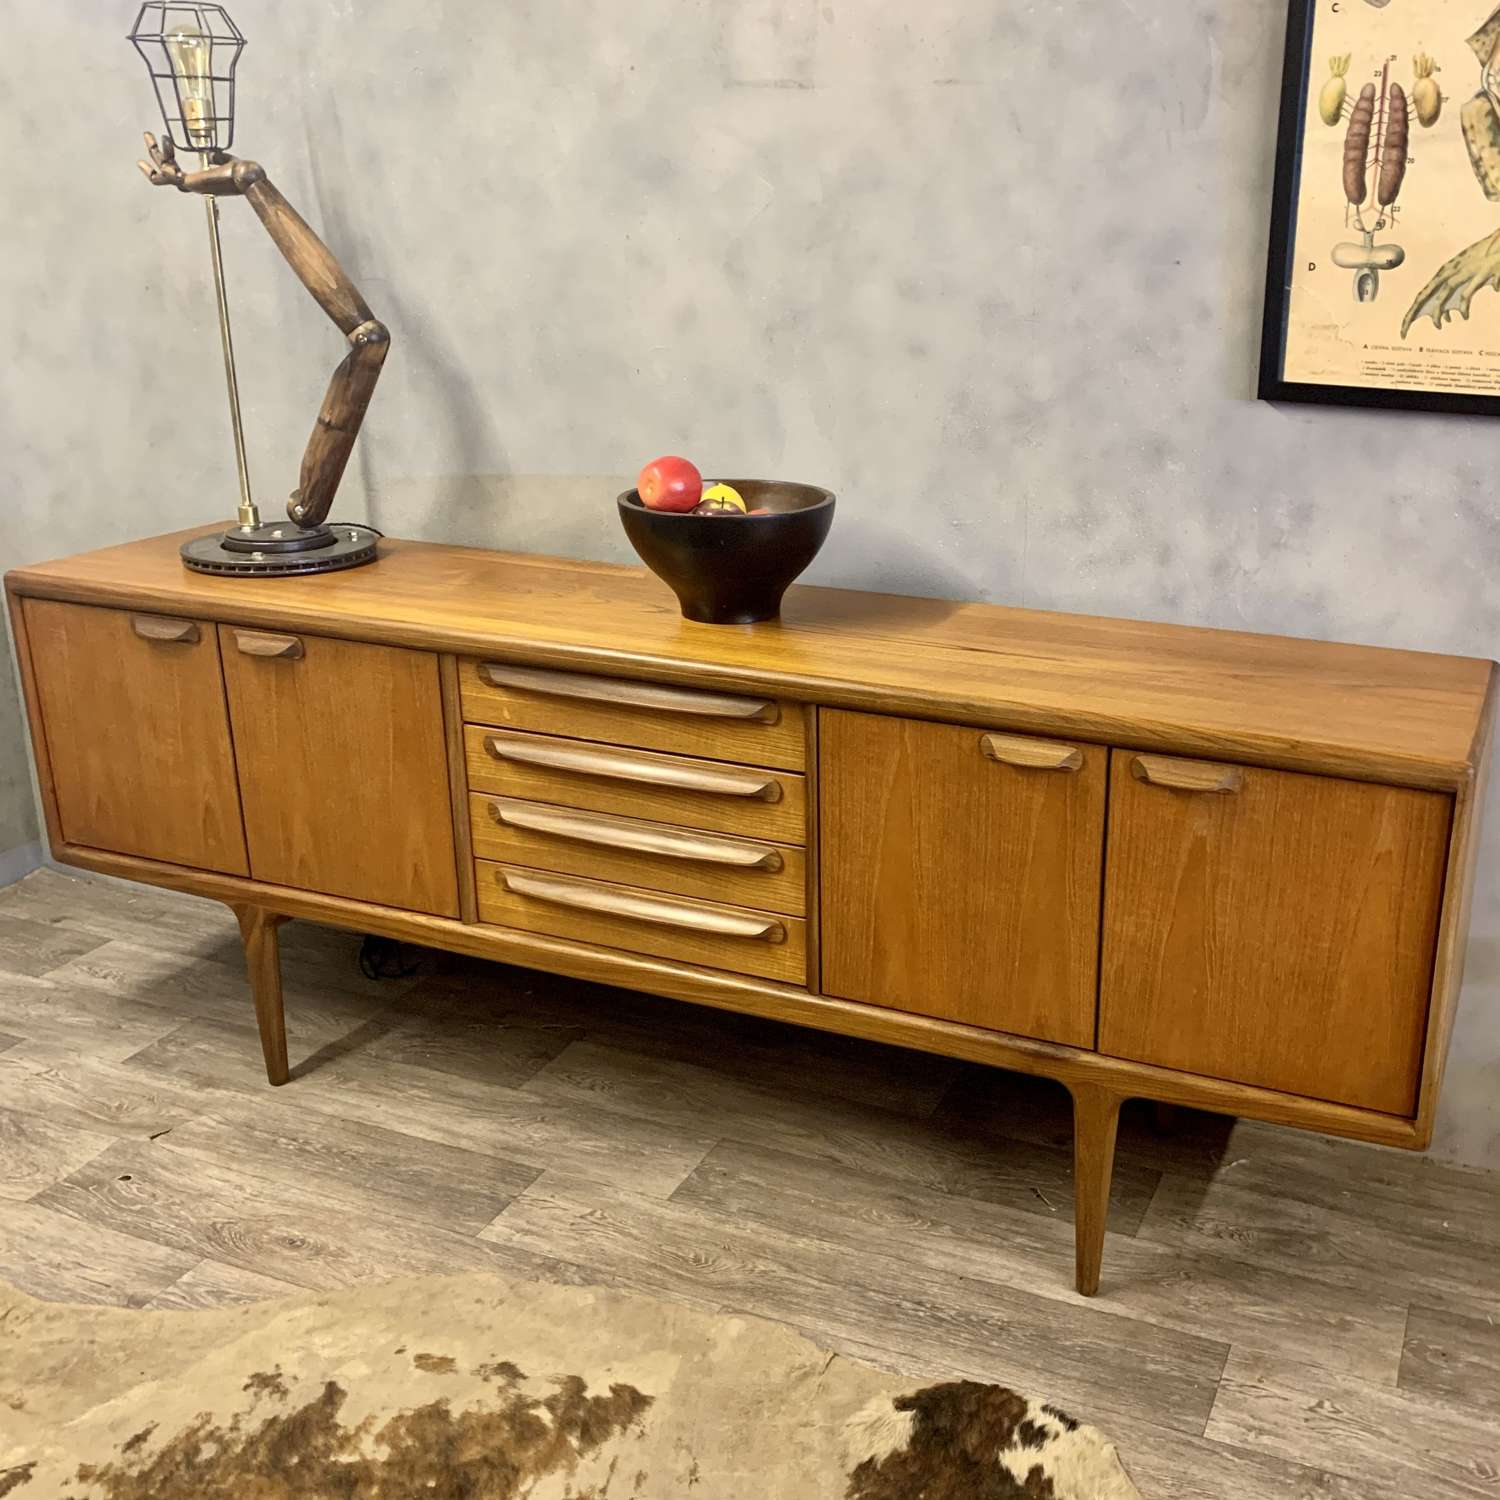 Midcentury sideboard A Younger